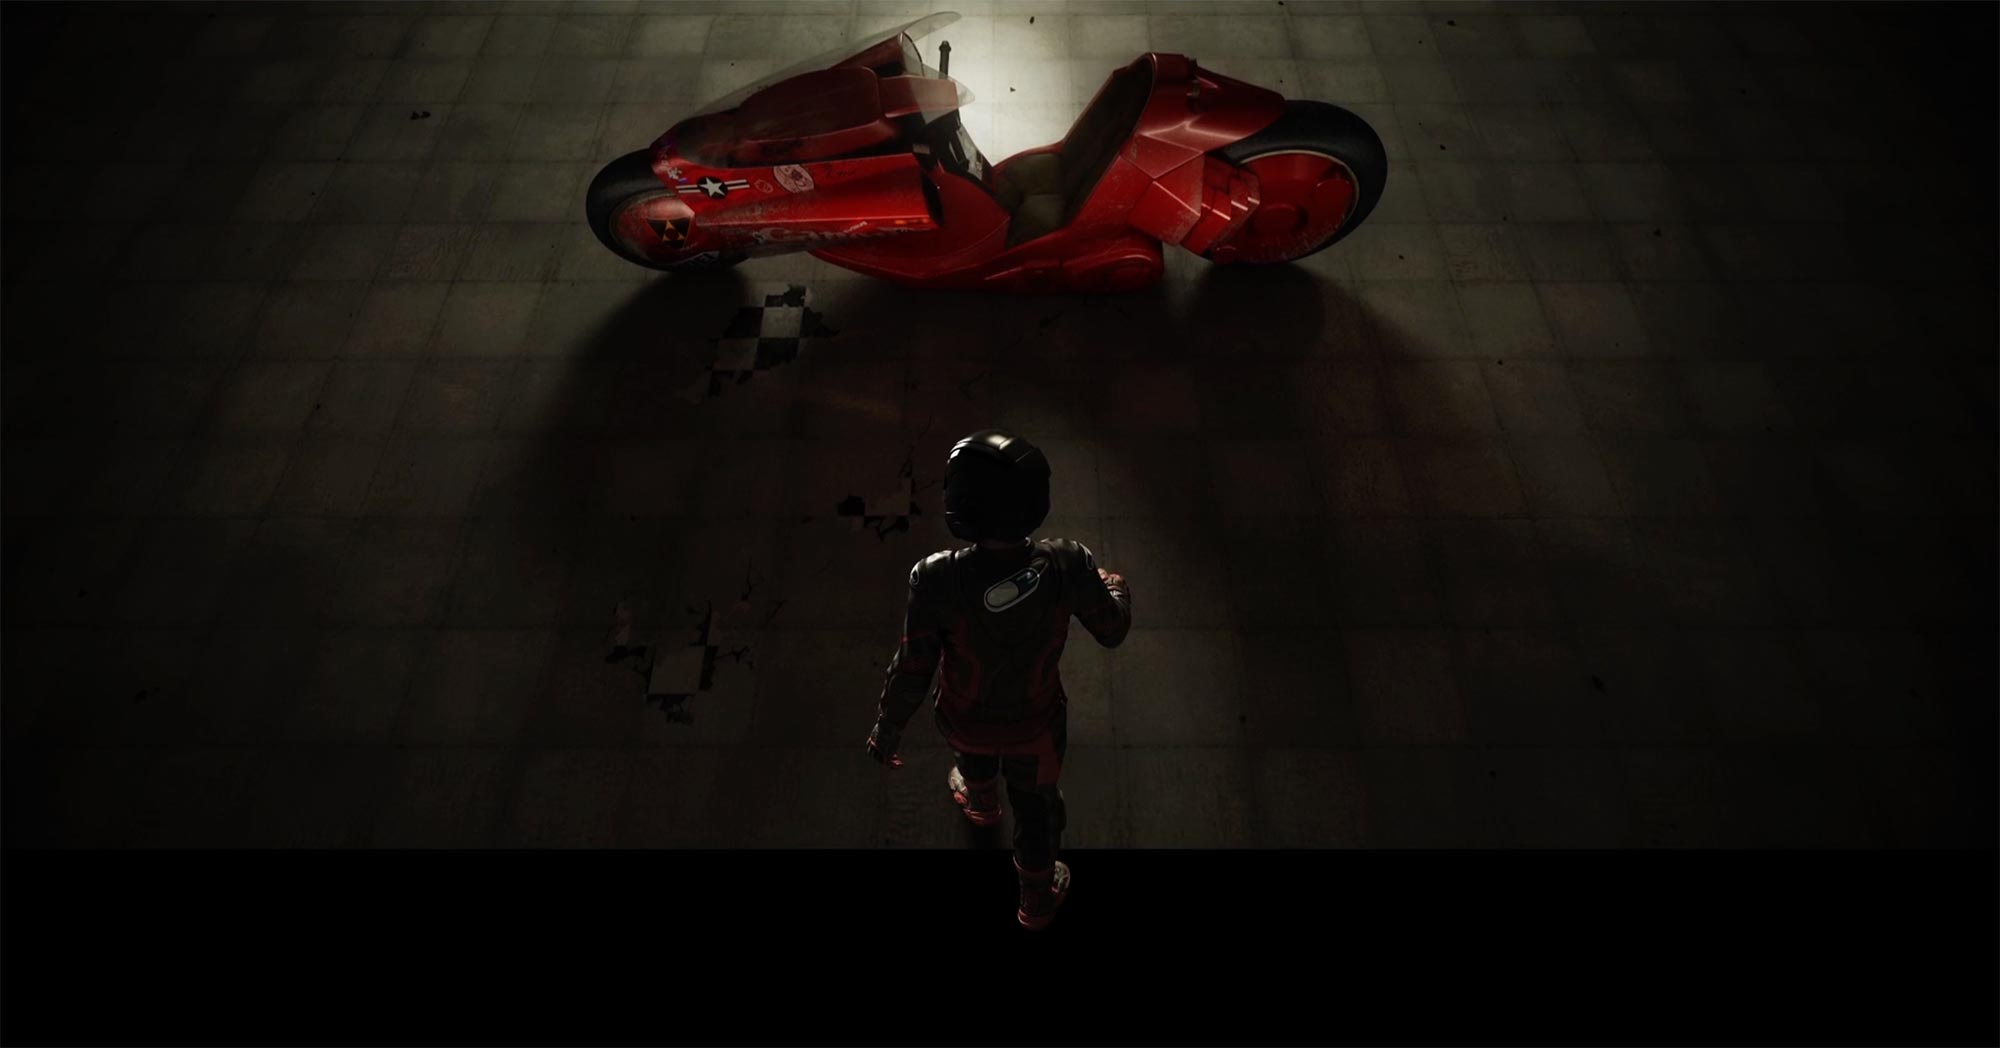 An Homage To The Kaneda Bike In Akira